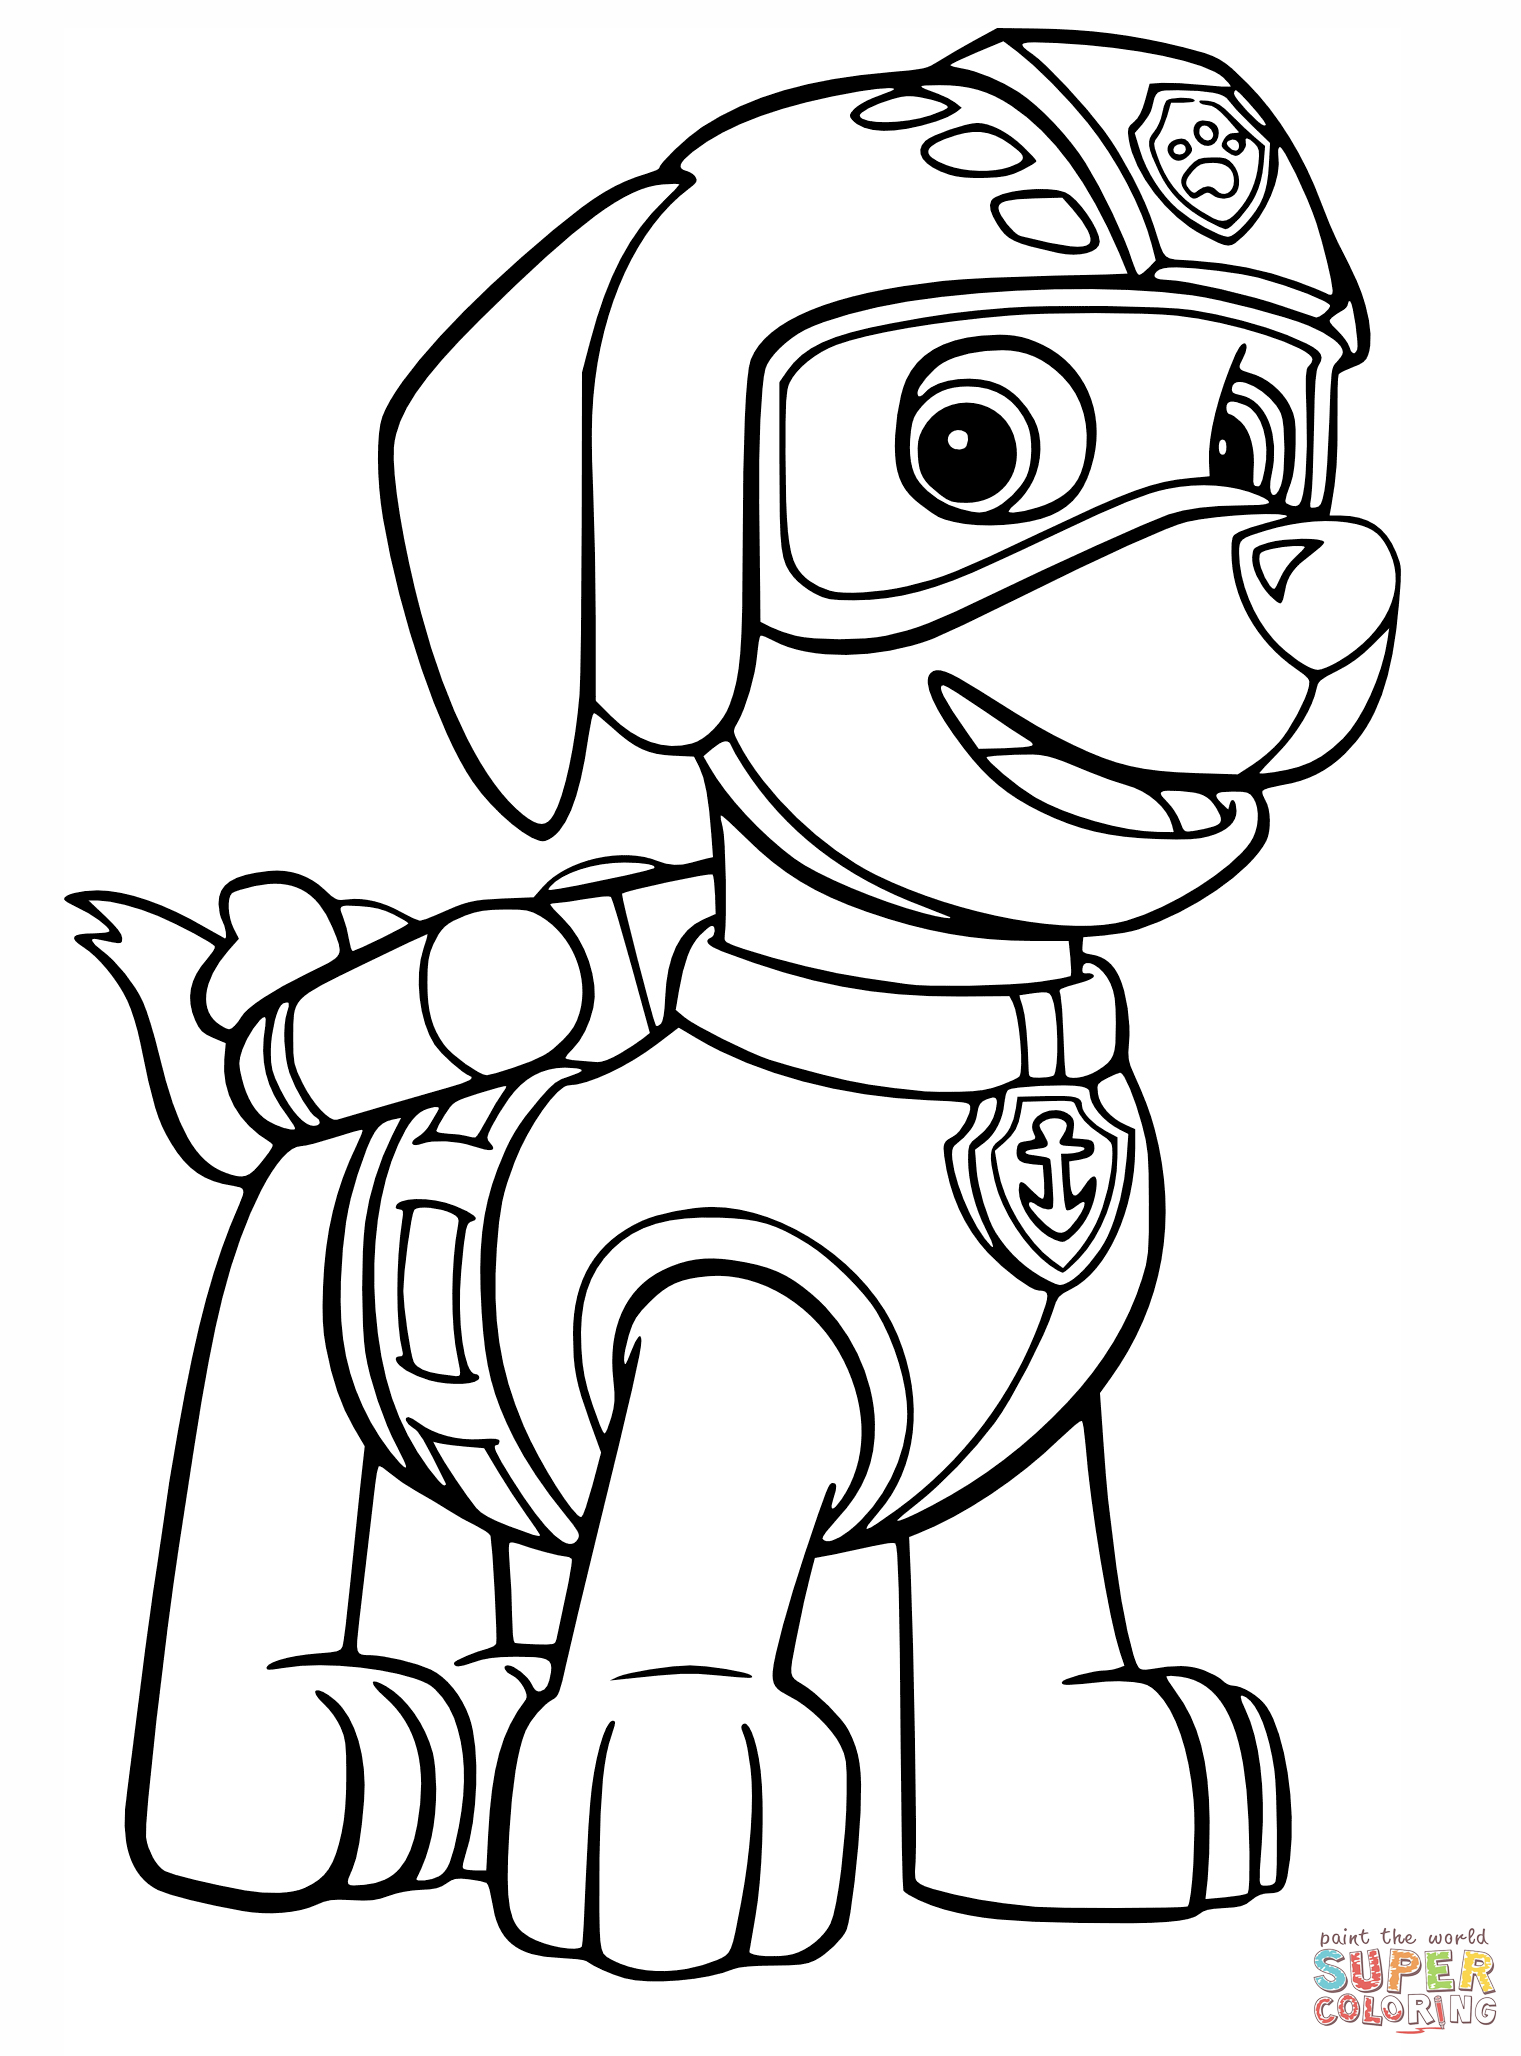 Paw patrol clipart black and white png free PAW Patrol coloring pages | Free Coloring Pages png free